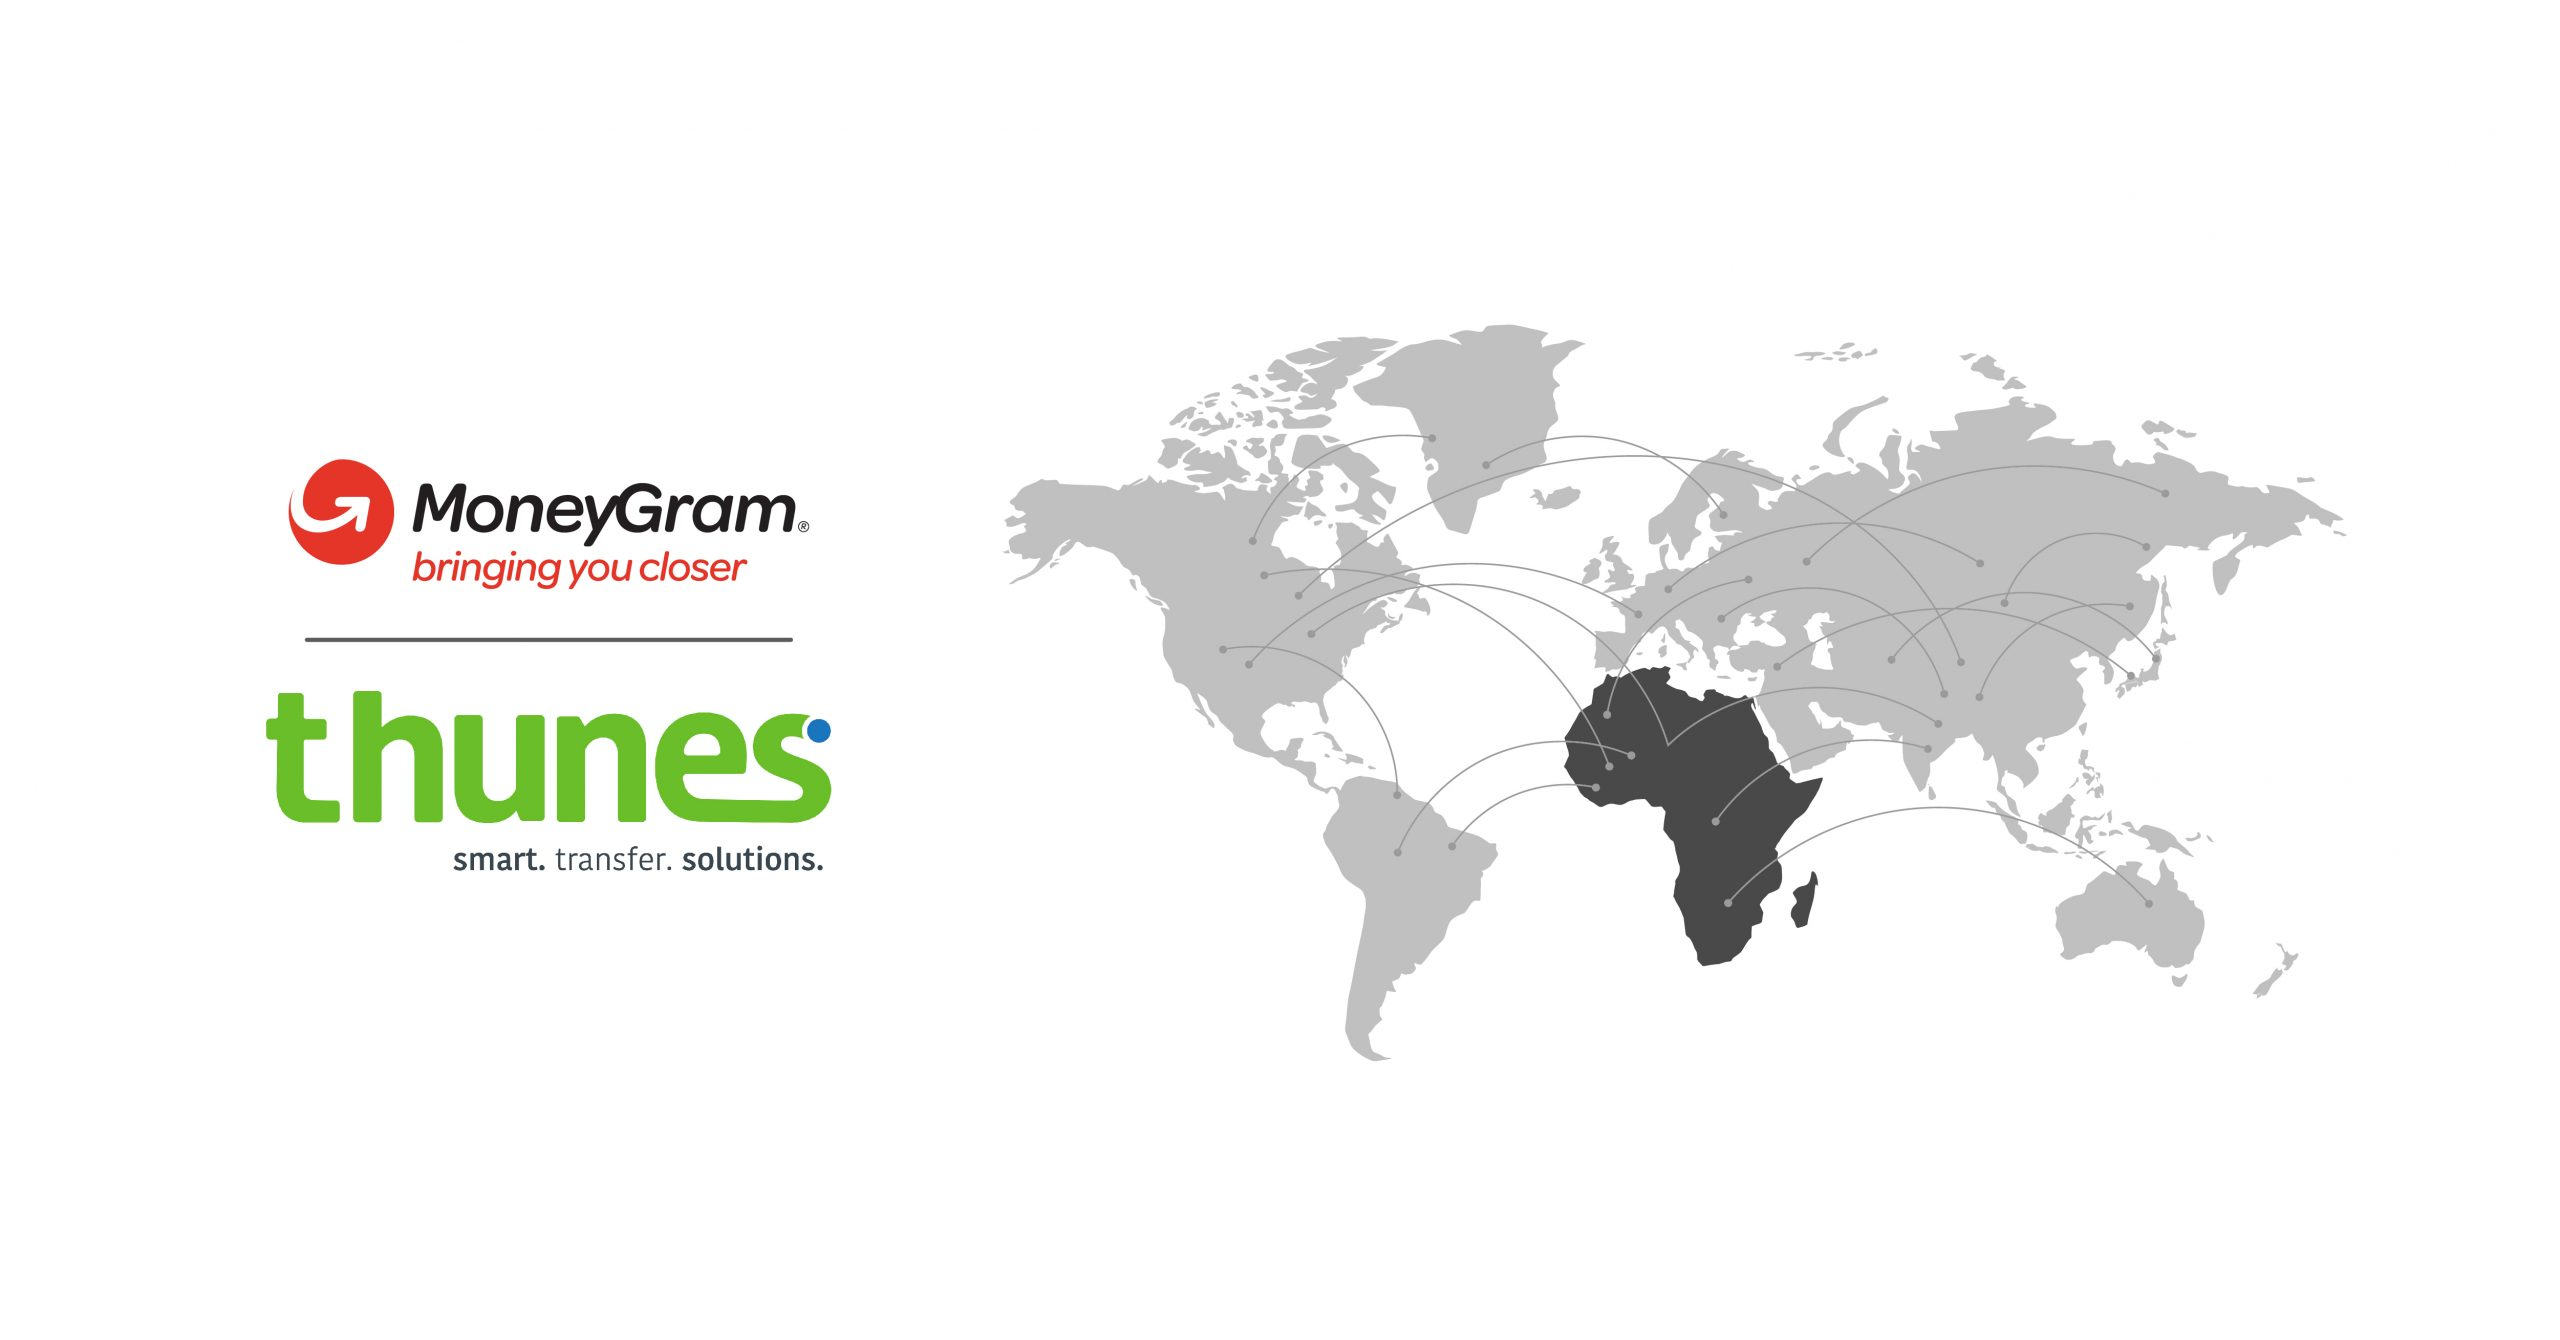 Partnership between Thunes and MoneyGram